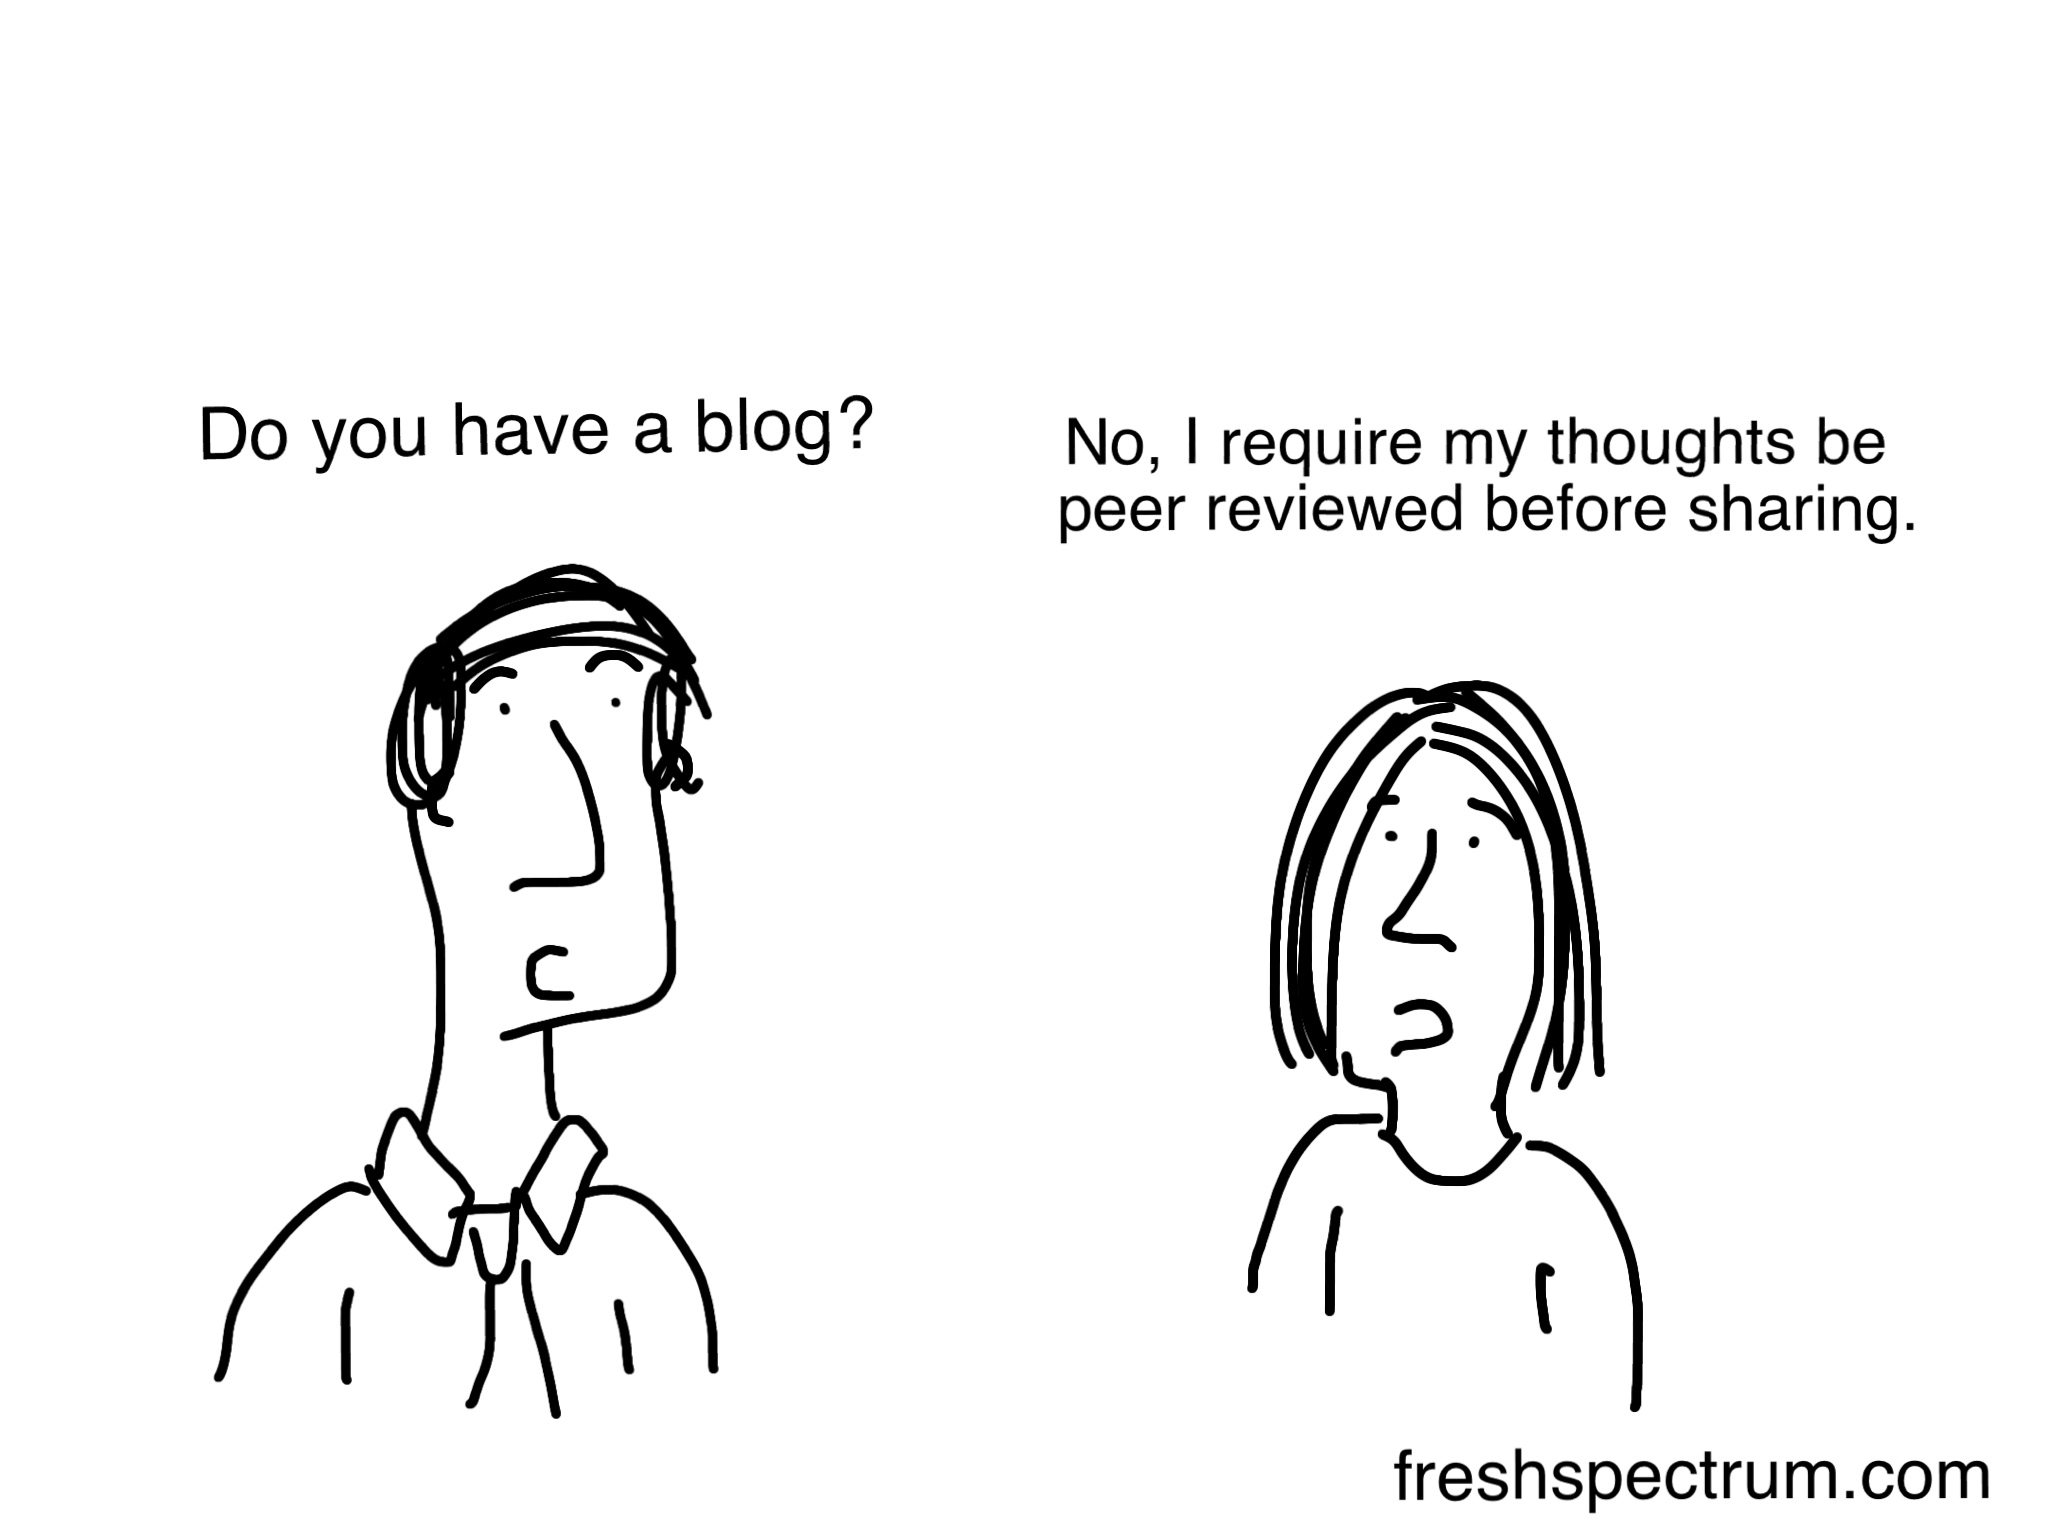 Cartoon: Person One: Do you have a blog? Person Two: No, I require my thoughts be peer reviewed before sharing.